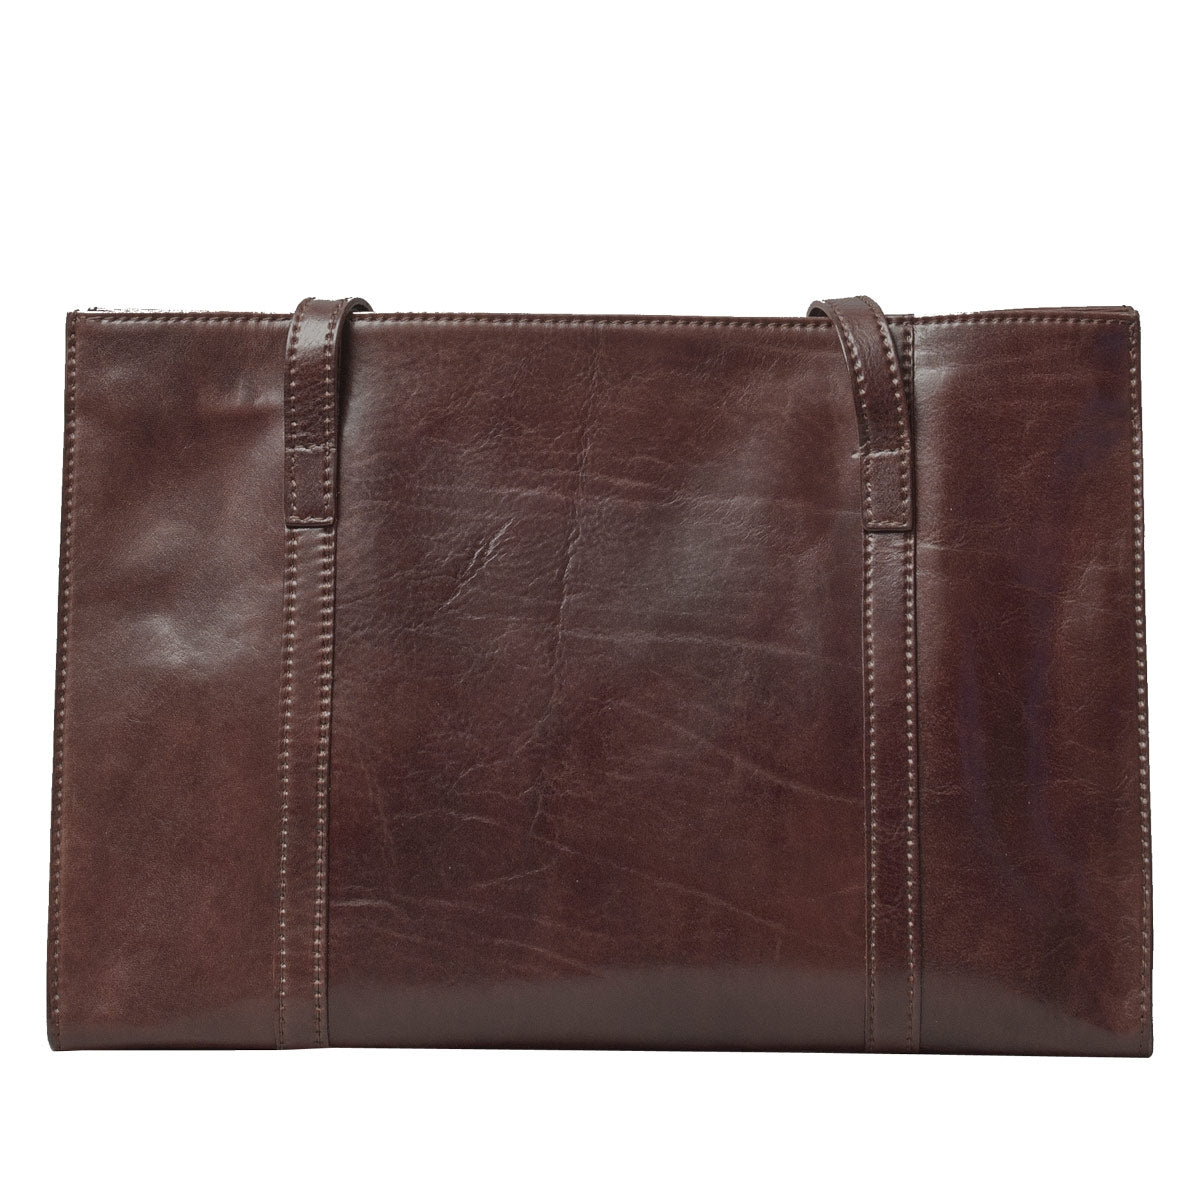 Image 4 of the 'Rivara' Brown Large Leather Shoulder Bag For Ladies